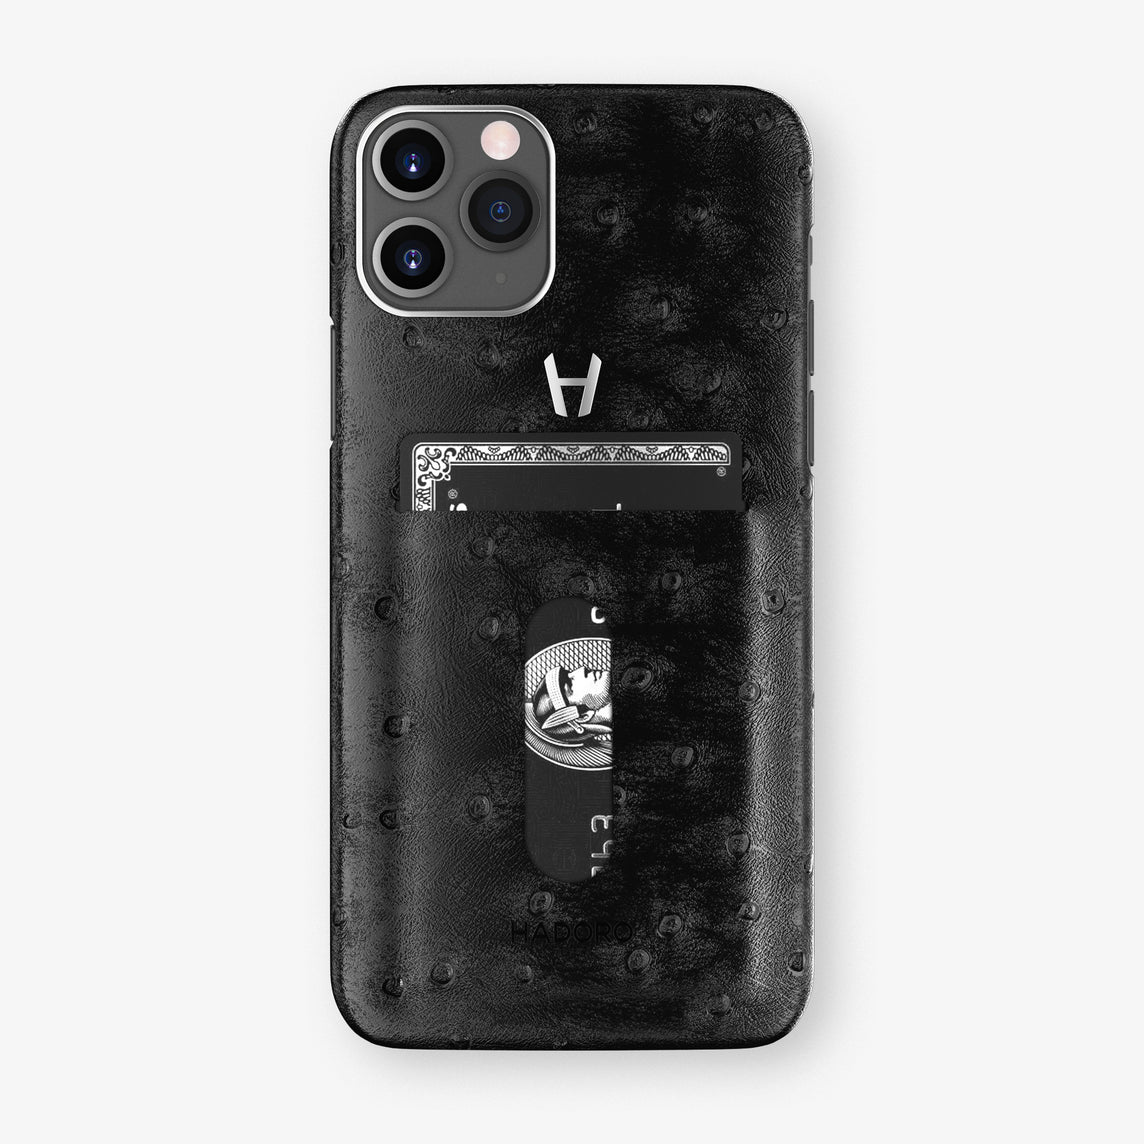 Ostrich Card Holder Case iPhone 11 Pro | Black - Stainless Steel